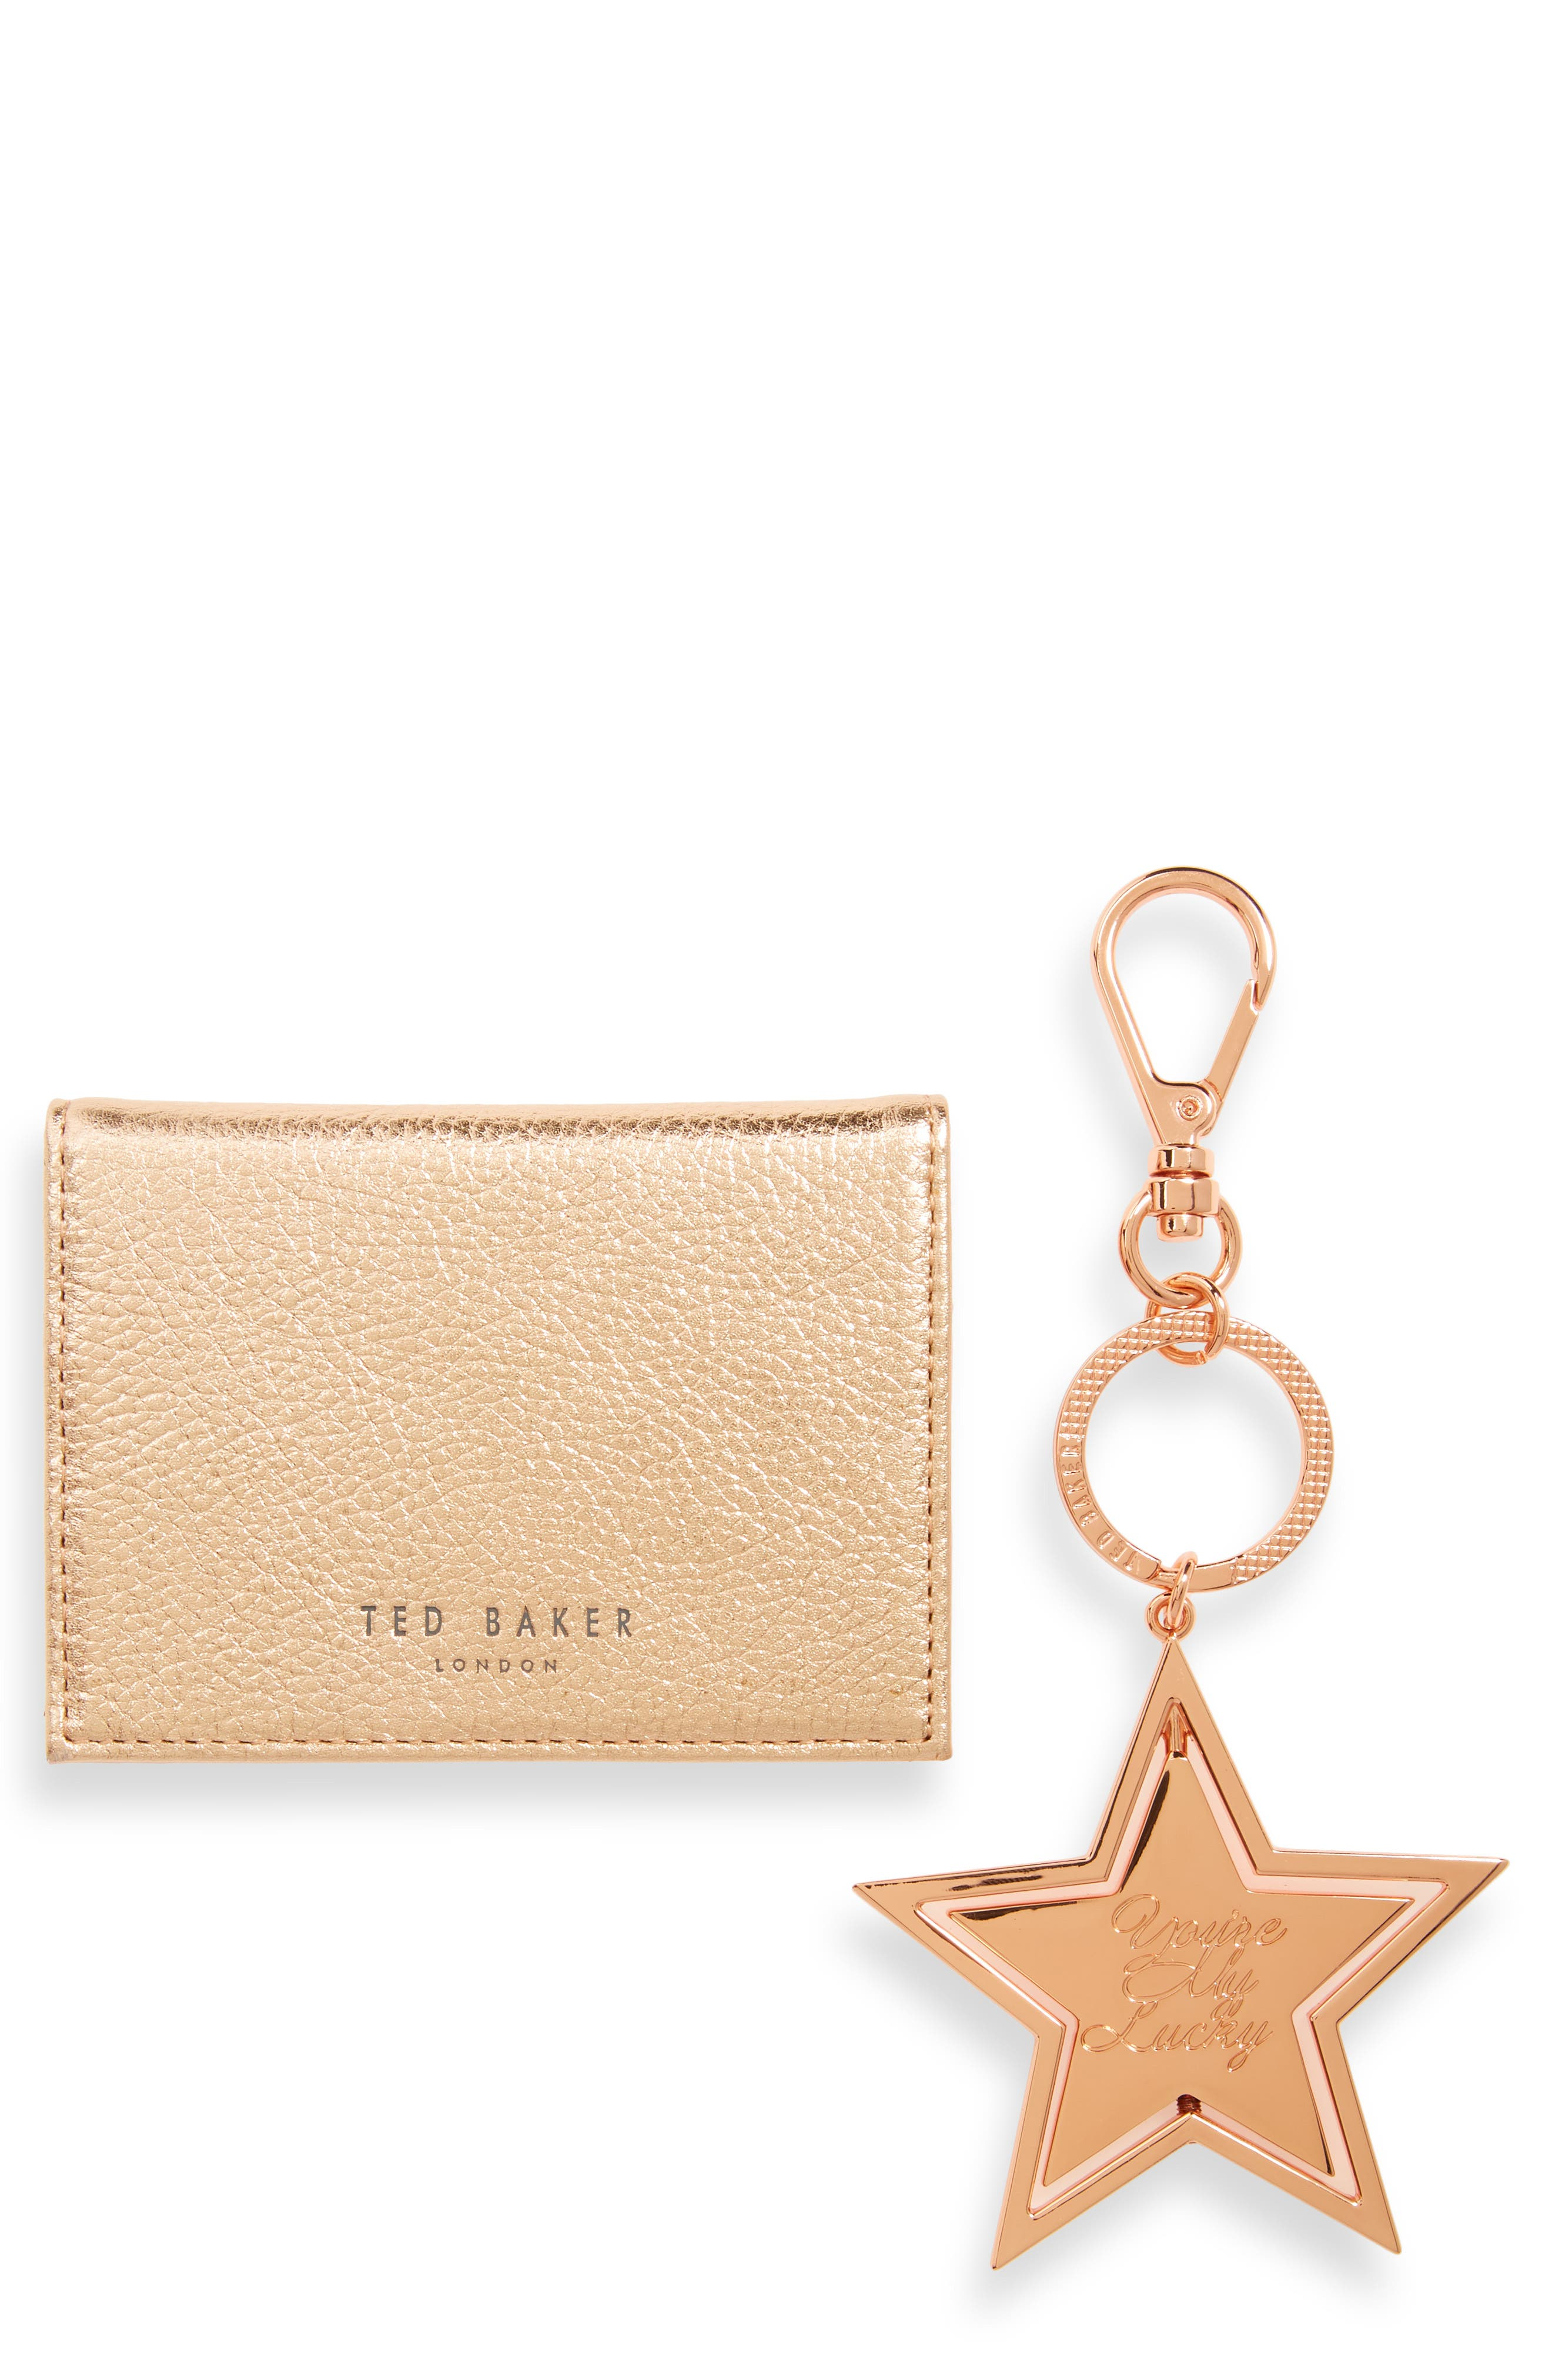 TED BAKER LONDON,                             Leather Card Case & Key Ring Set,                             Main thumbnail 1, color,                             ROSE GOLD